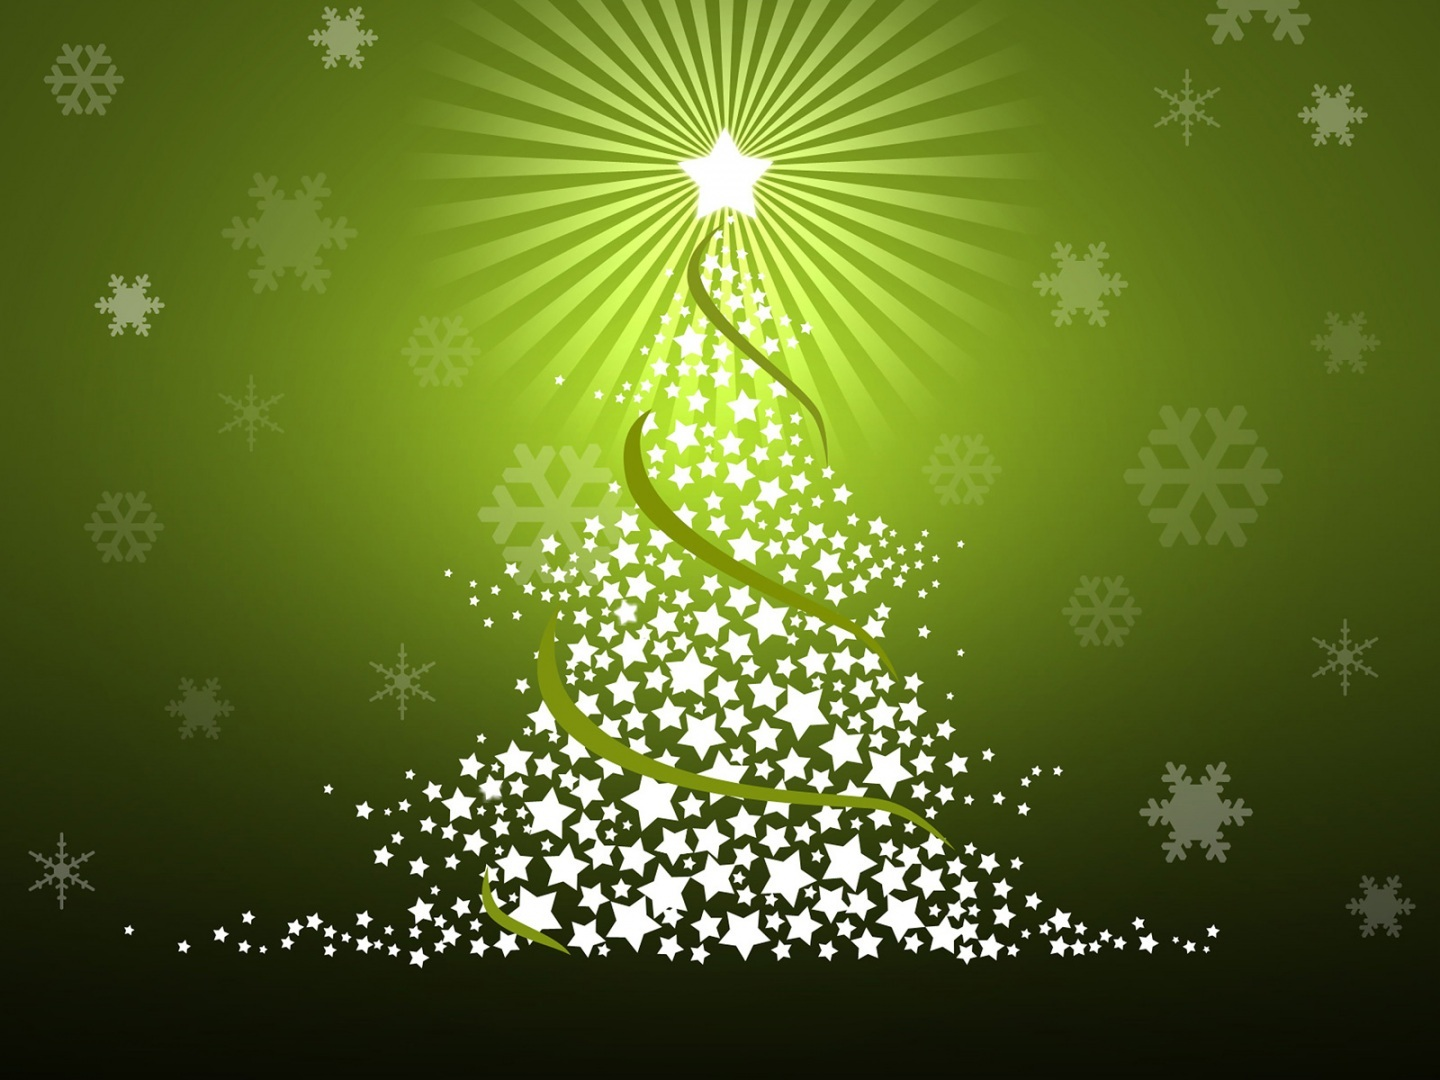 christmas live wallpaper free android apps on google play 1440x1080 - Christmas Wallpaper For Android